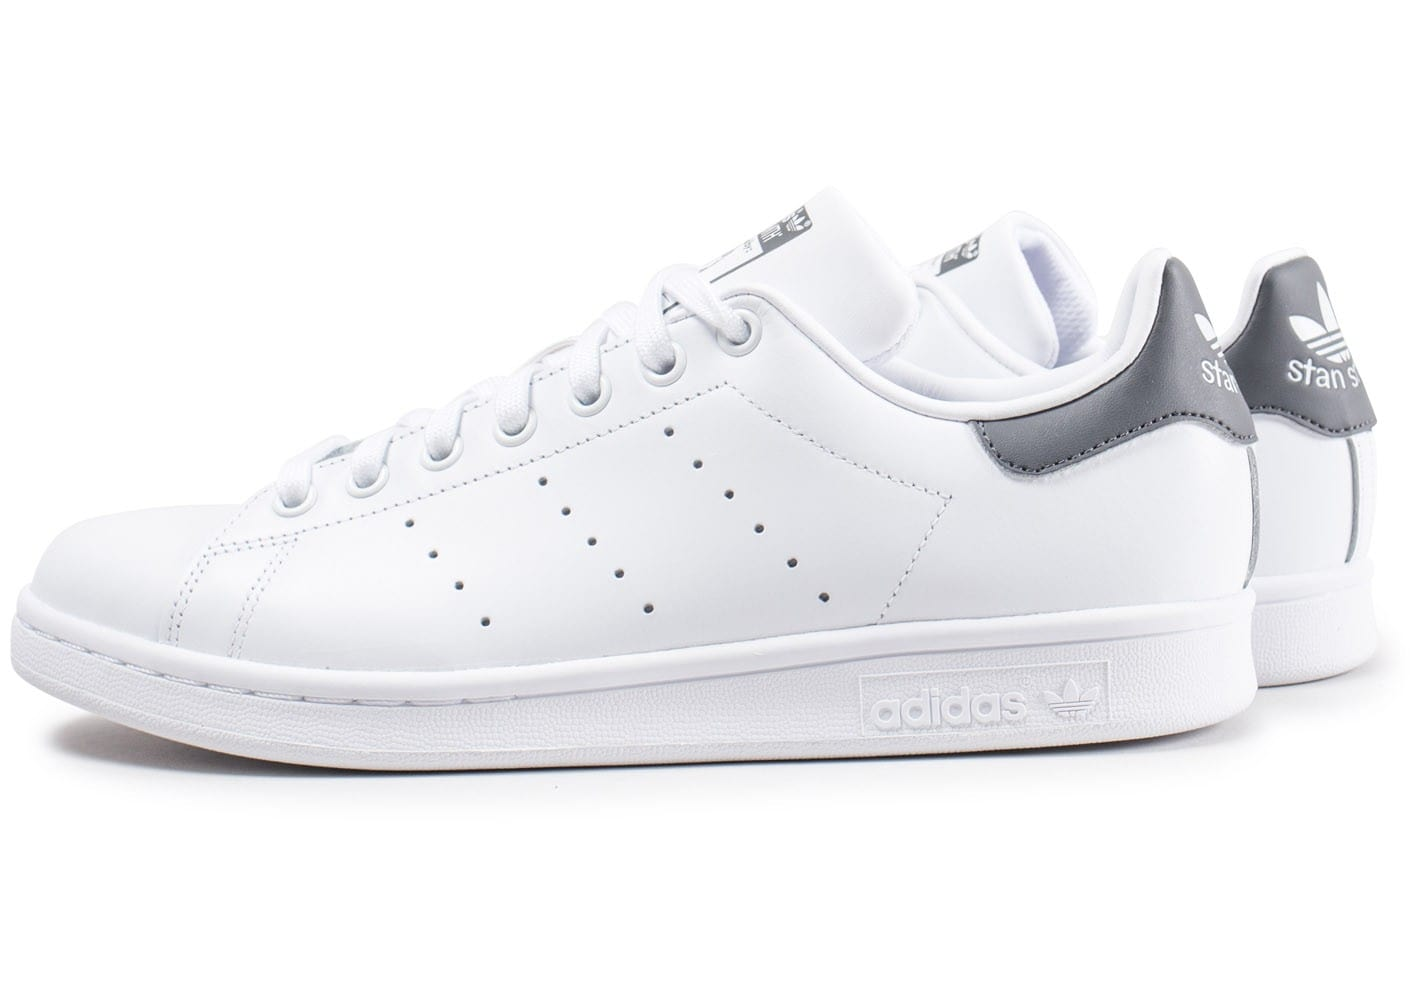 adidas stan smith blanc gris allow project.eu